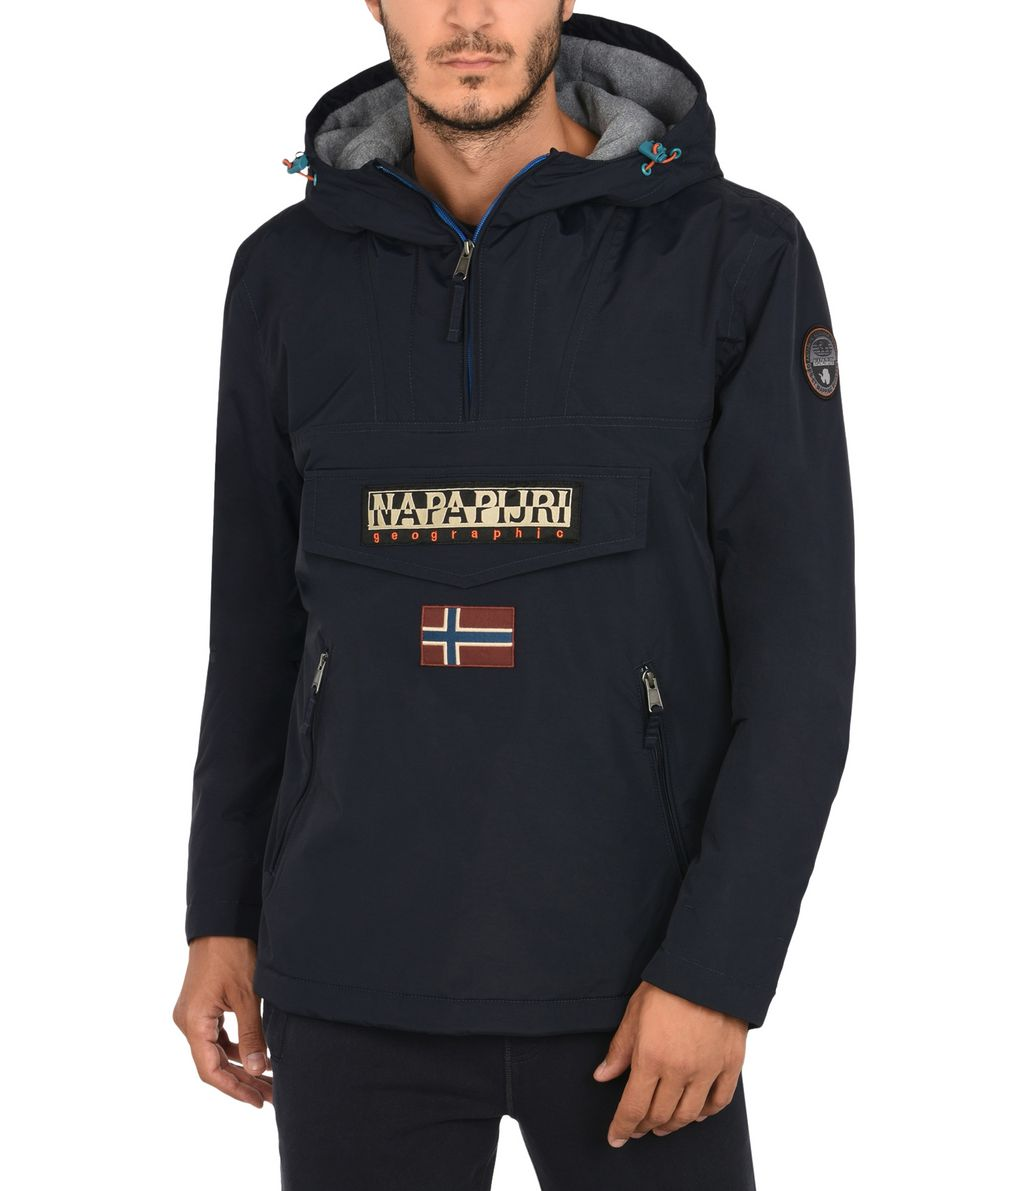 NAPAPIJRI RAINFOREST POCKETS SMARTY HOMME RAINFOREST,BLEU FONCÉ